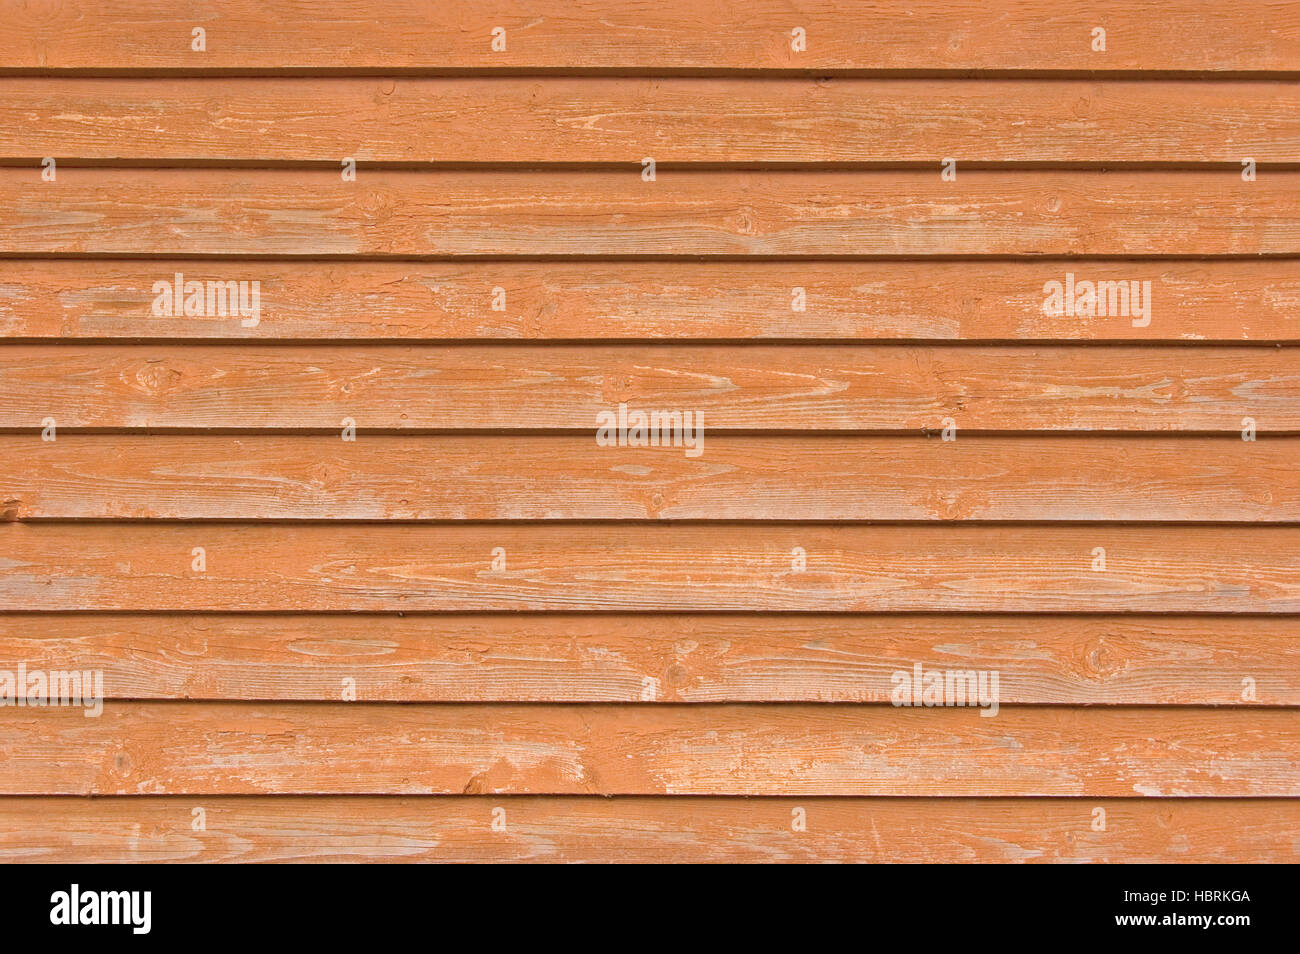 Horizontal Wood Fence Texture natural old wood fence planks, wooden close board texture stock